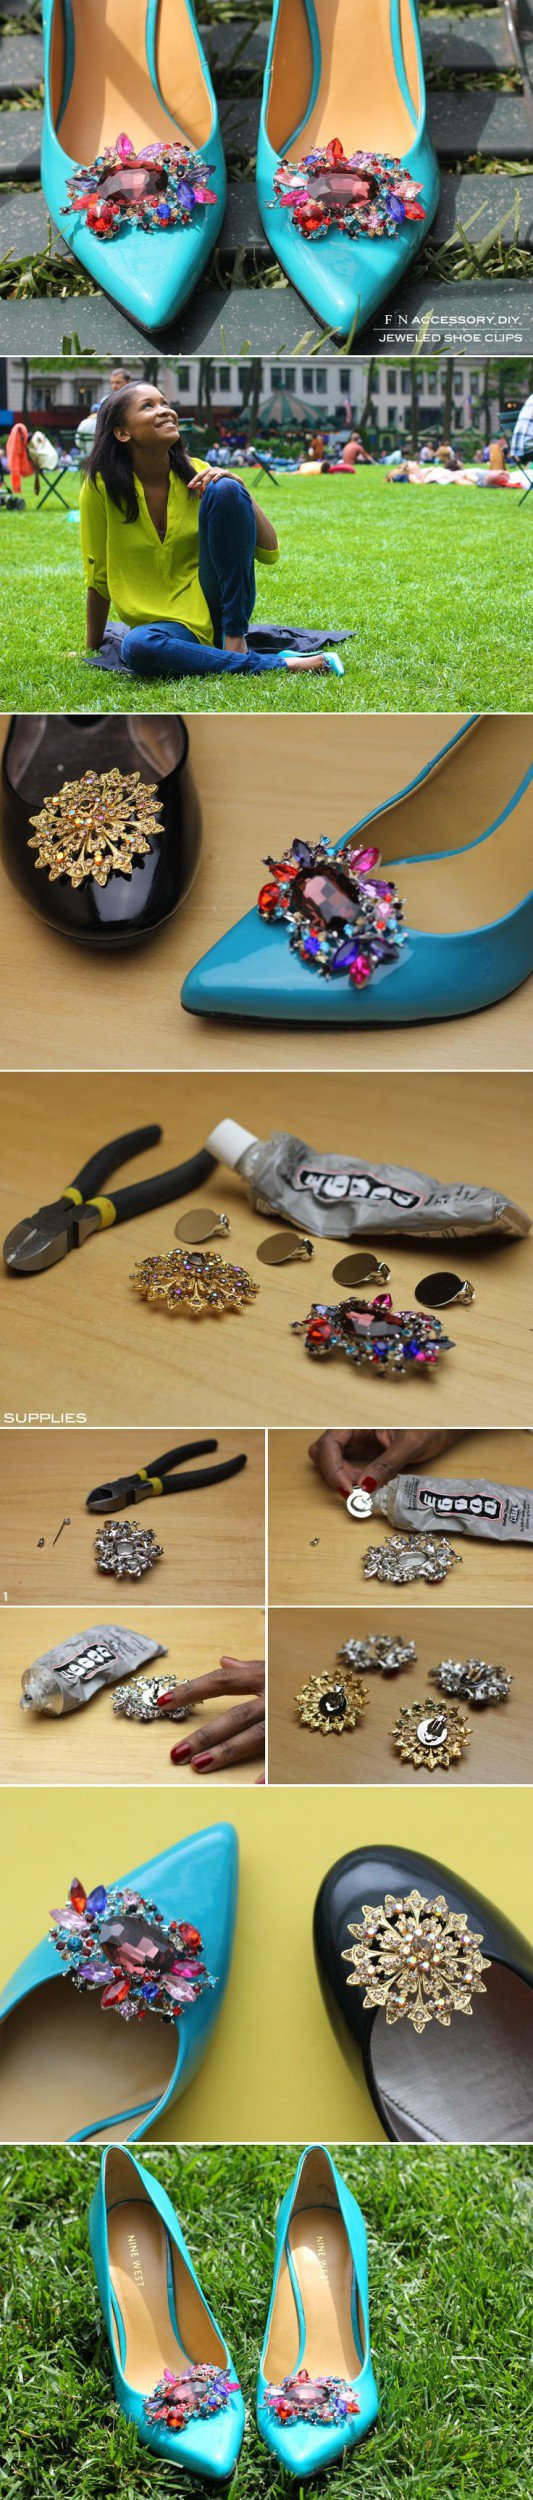 10 Adorable And Useful 5 Minutes Fashion DIY Projects That You ll Love